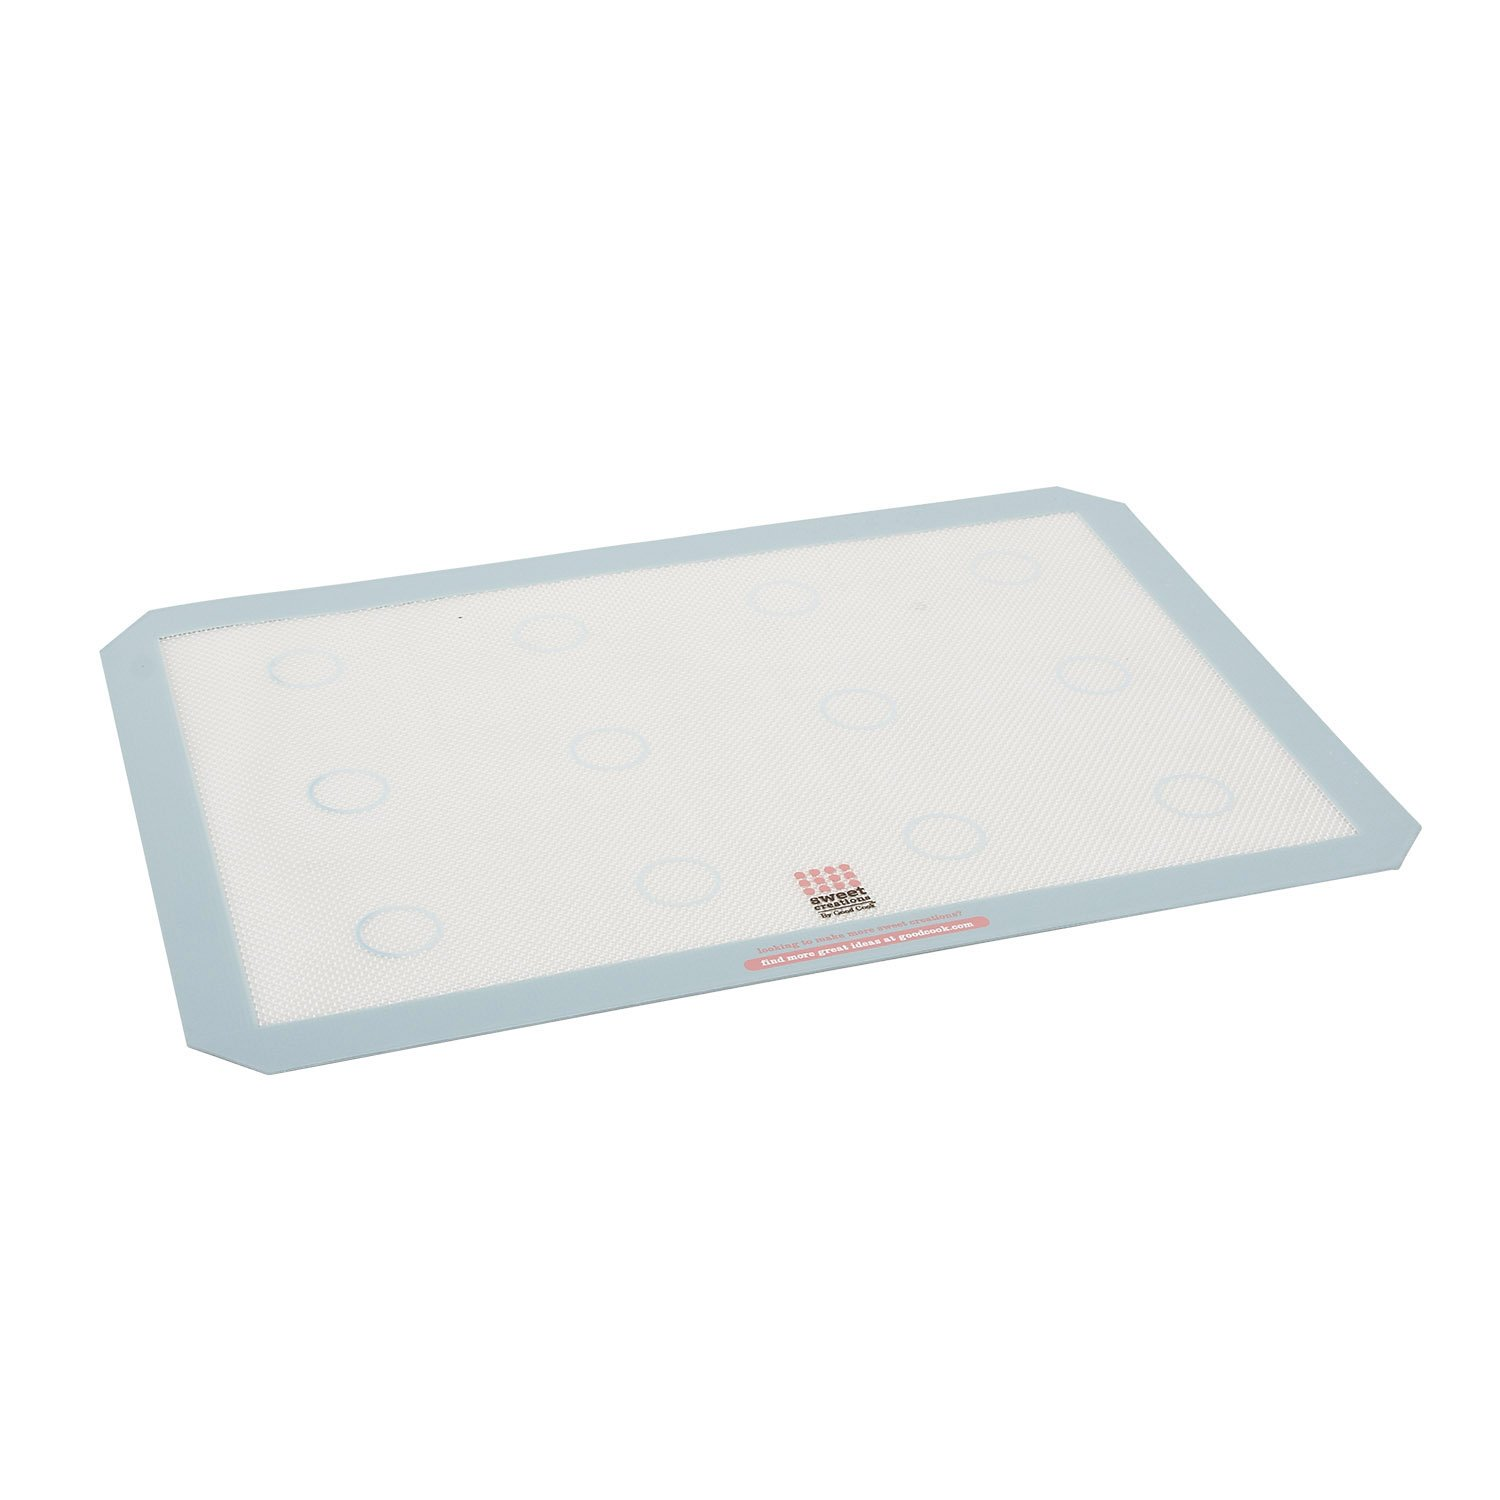 Sweet Creations High-Temp Silicone Oven Baking Mat